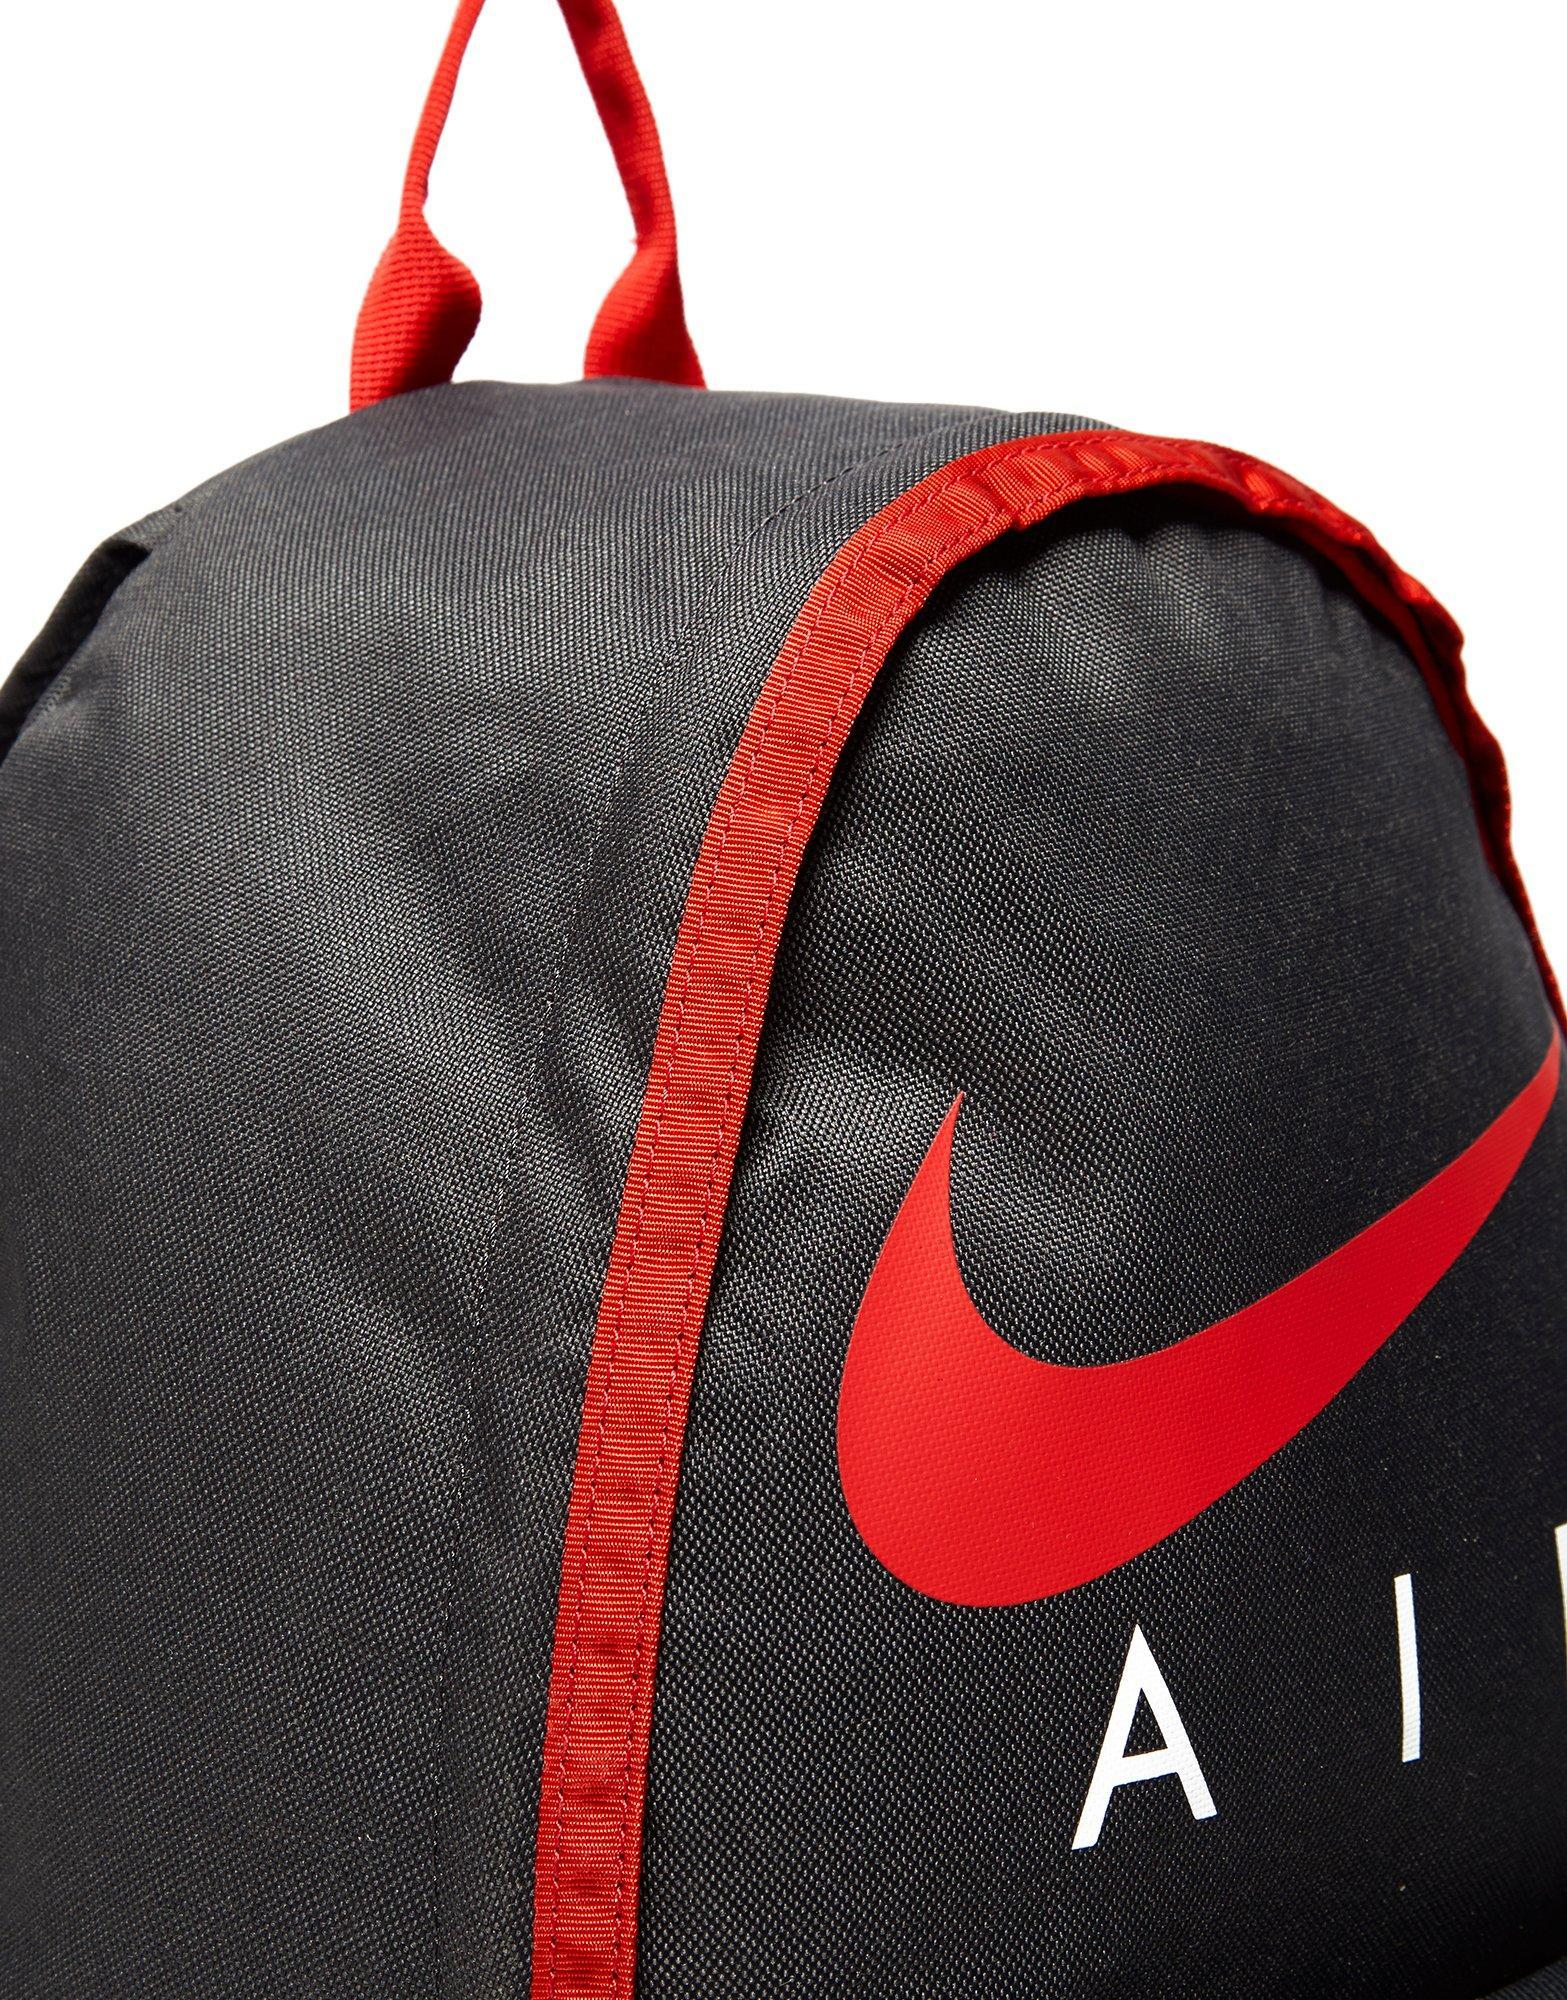 Nike cheyenne 3 0 premium backpack jd sports - Gallery Previously Sold At Jd Sports